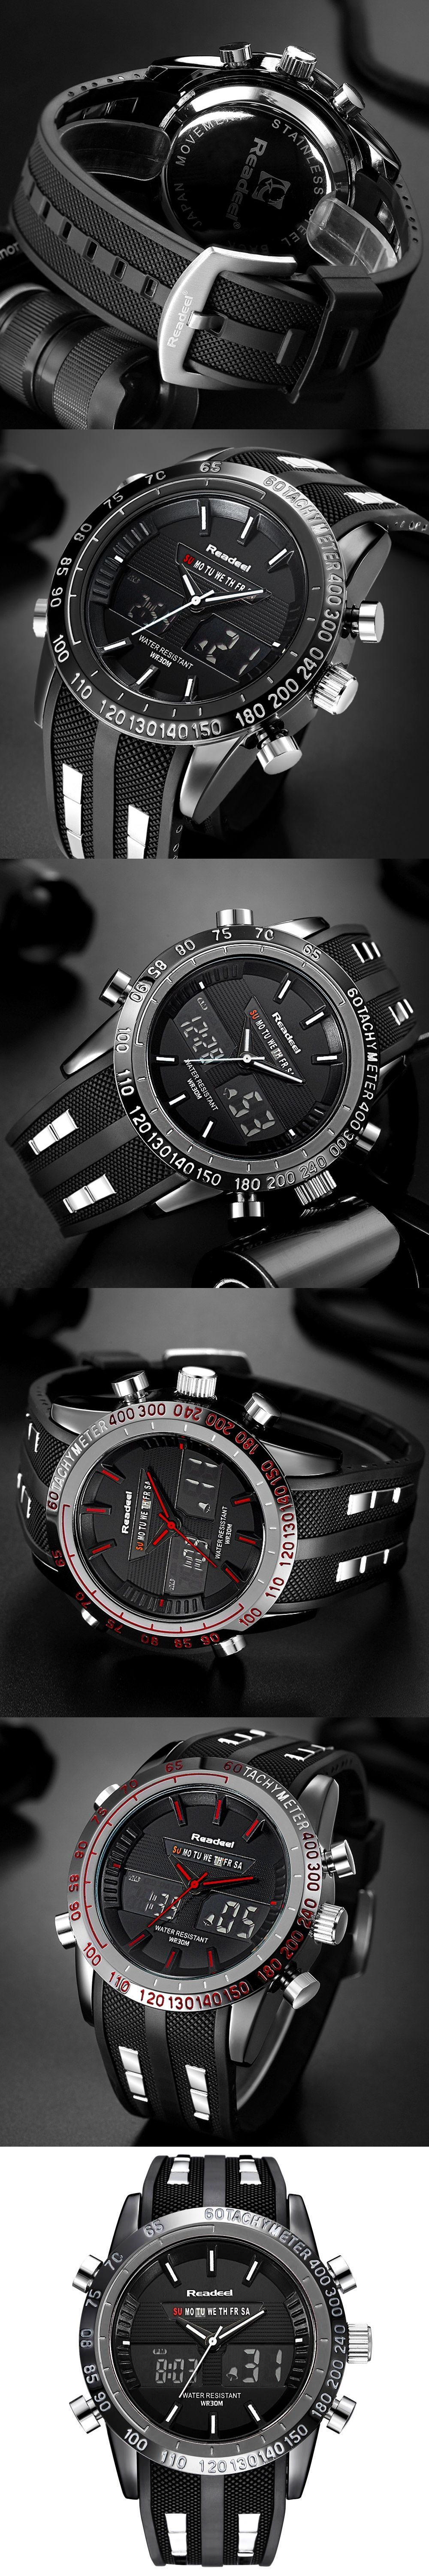 steel top pin dial luxury color unisex watch qualiry waterproof geneva analog select stainless men watches